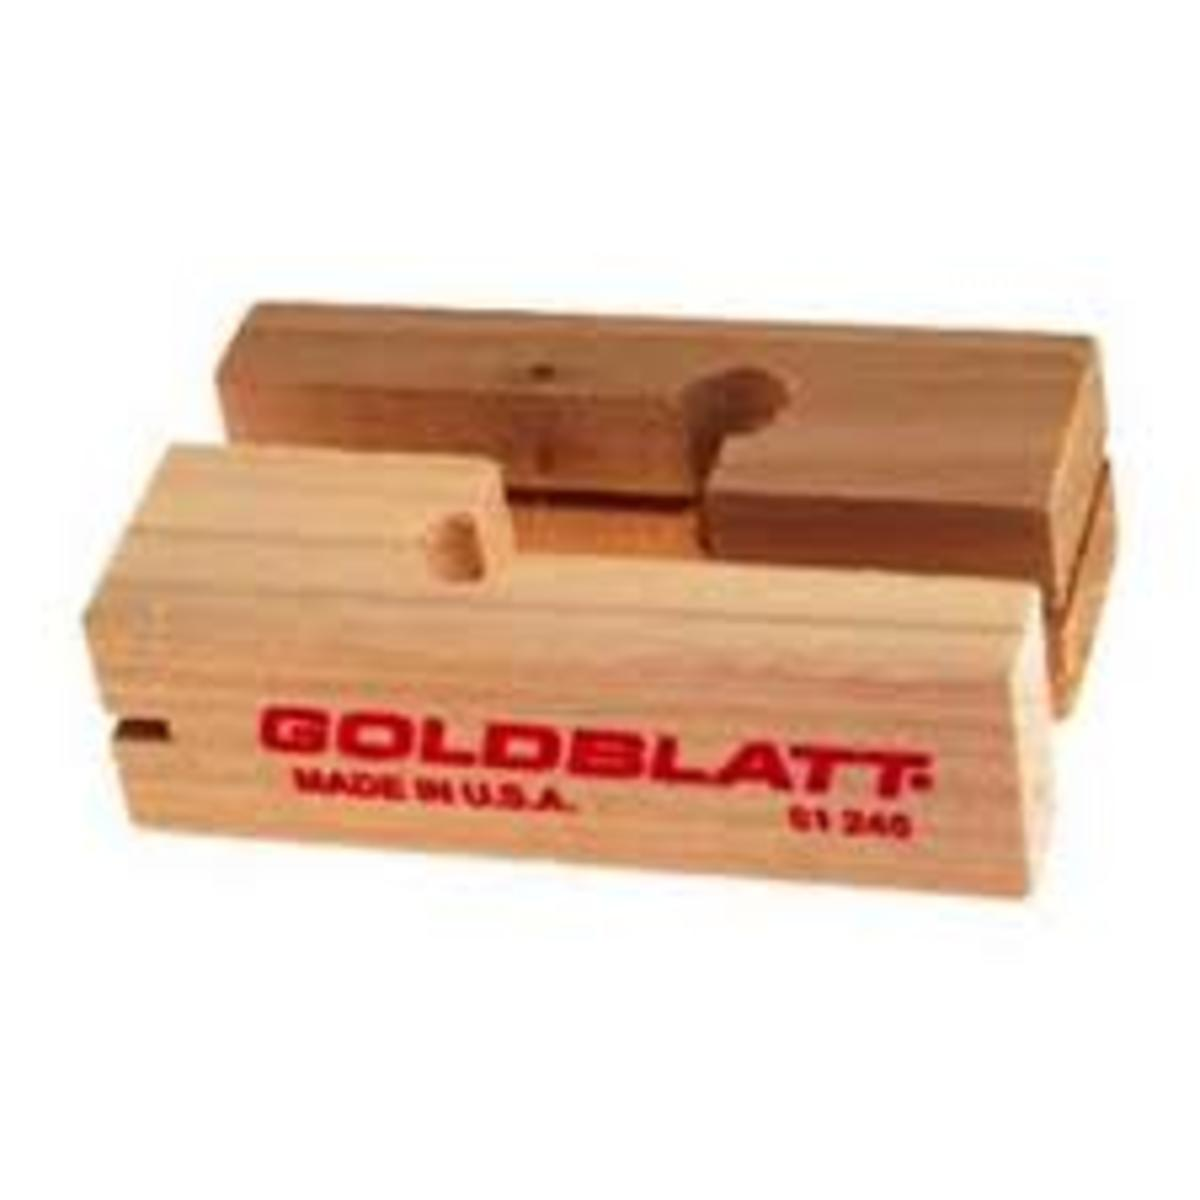 These wooden blocks are used to tie the bricklayer line, you can stretch the line tight so that it stays true straight.